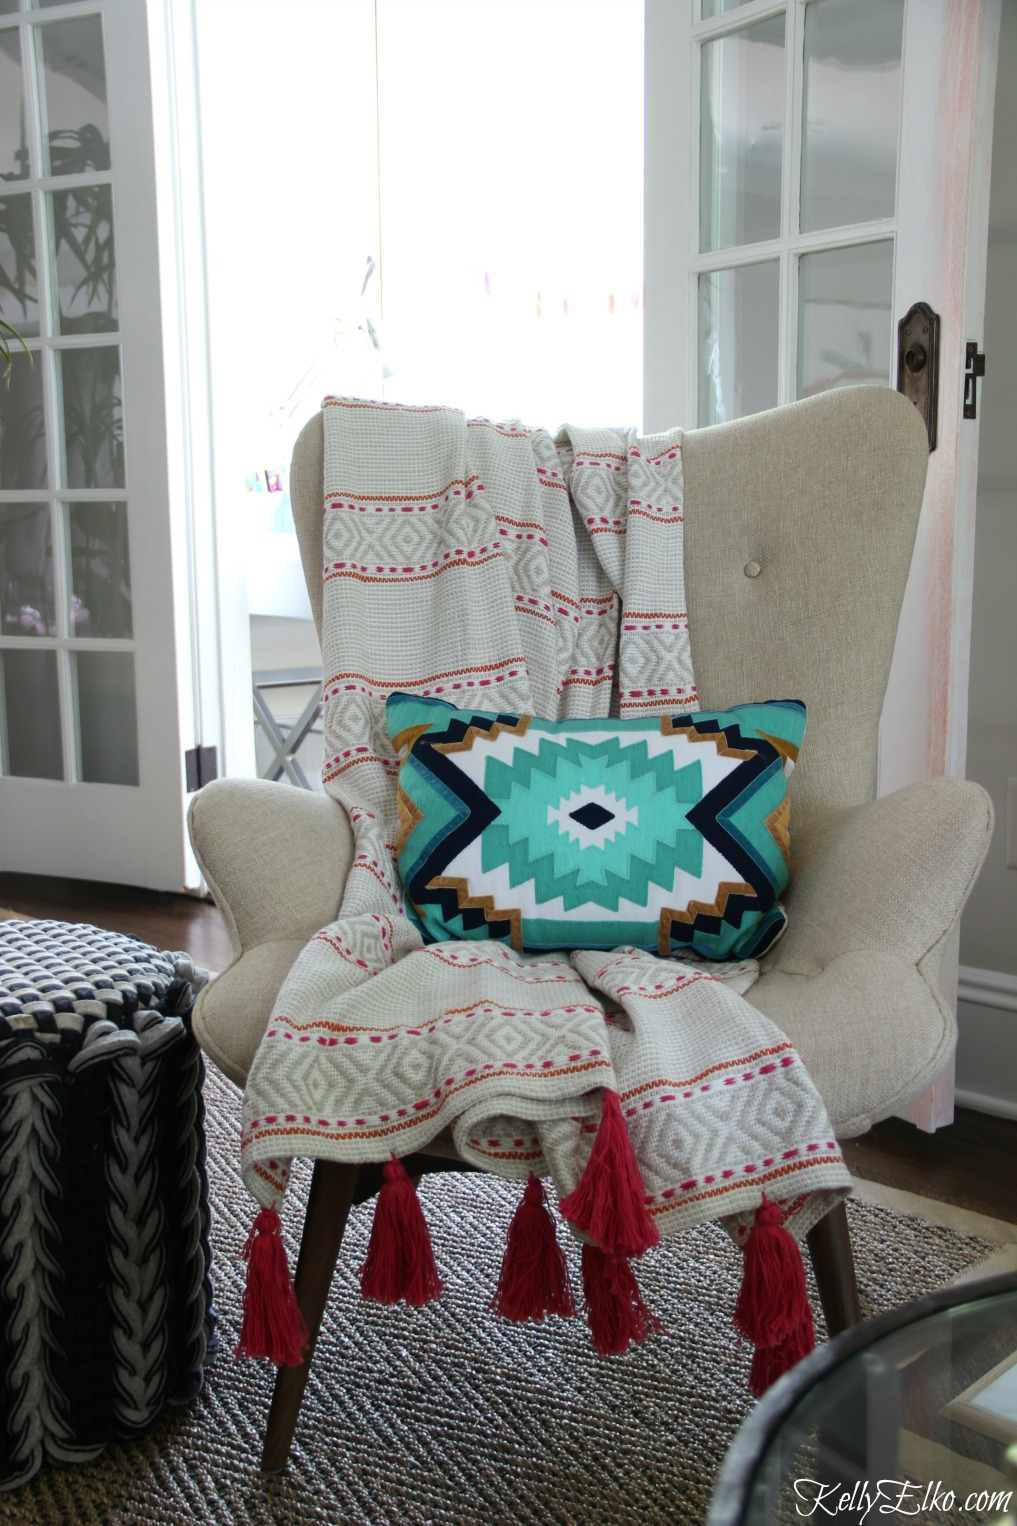 Love this mid century style chair with colorful pink tassel throw kellyelko.com